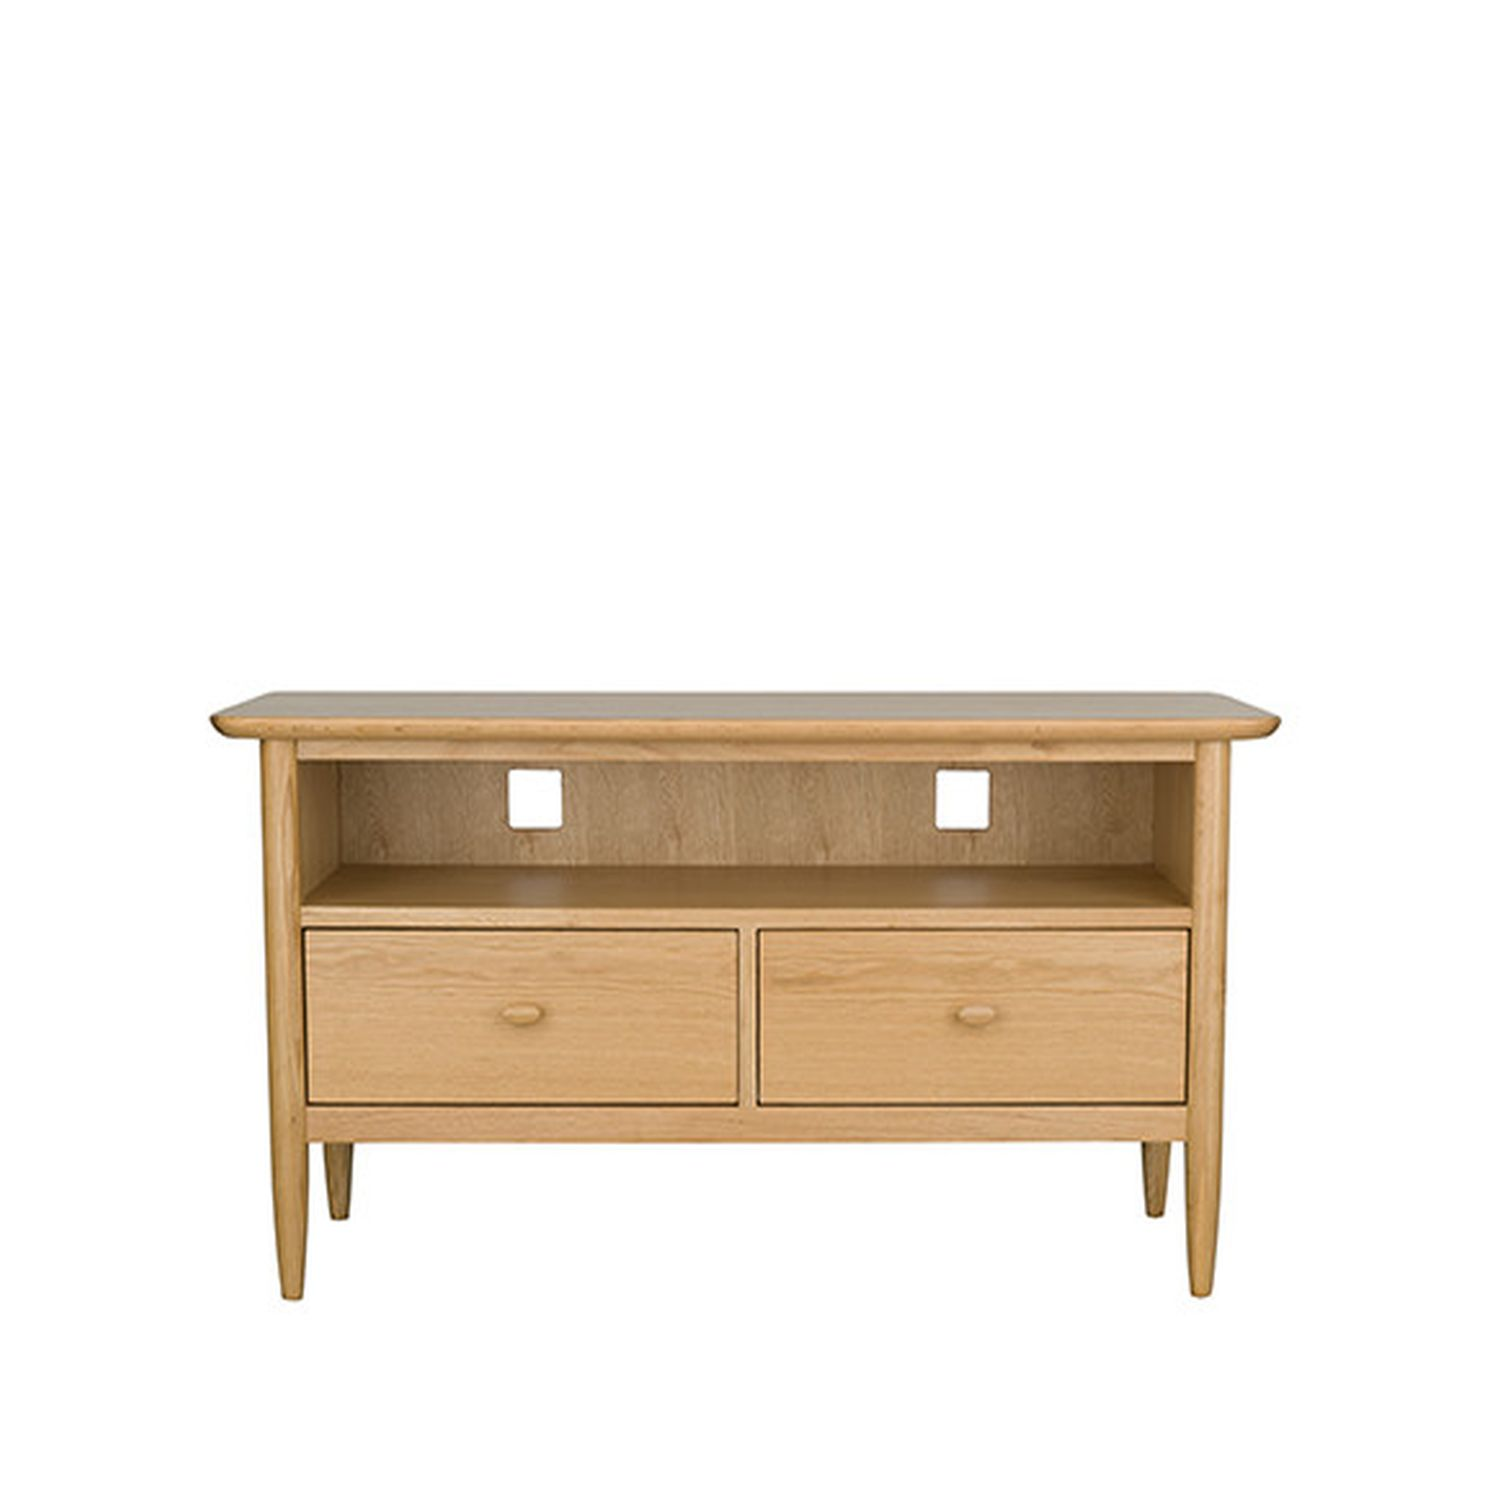 Image of Ercol Teramo TV Unit